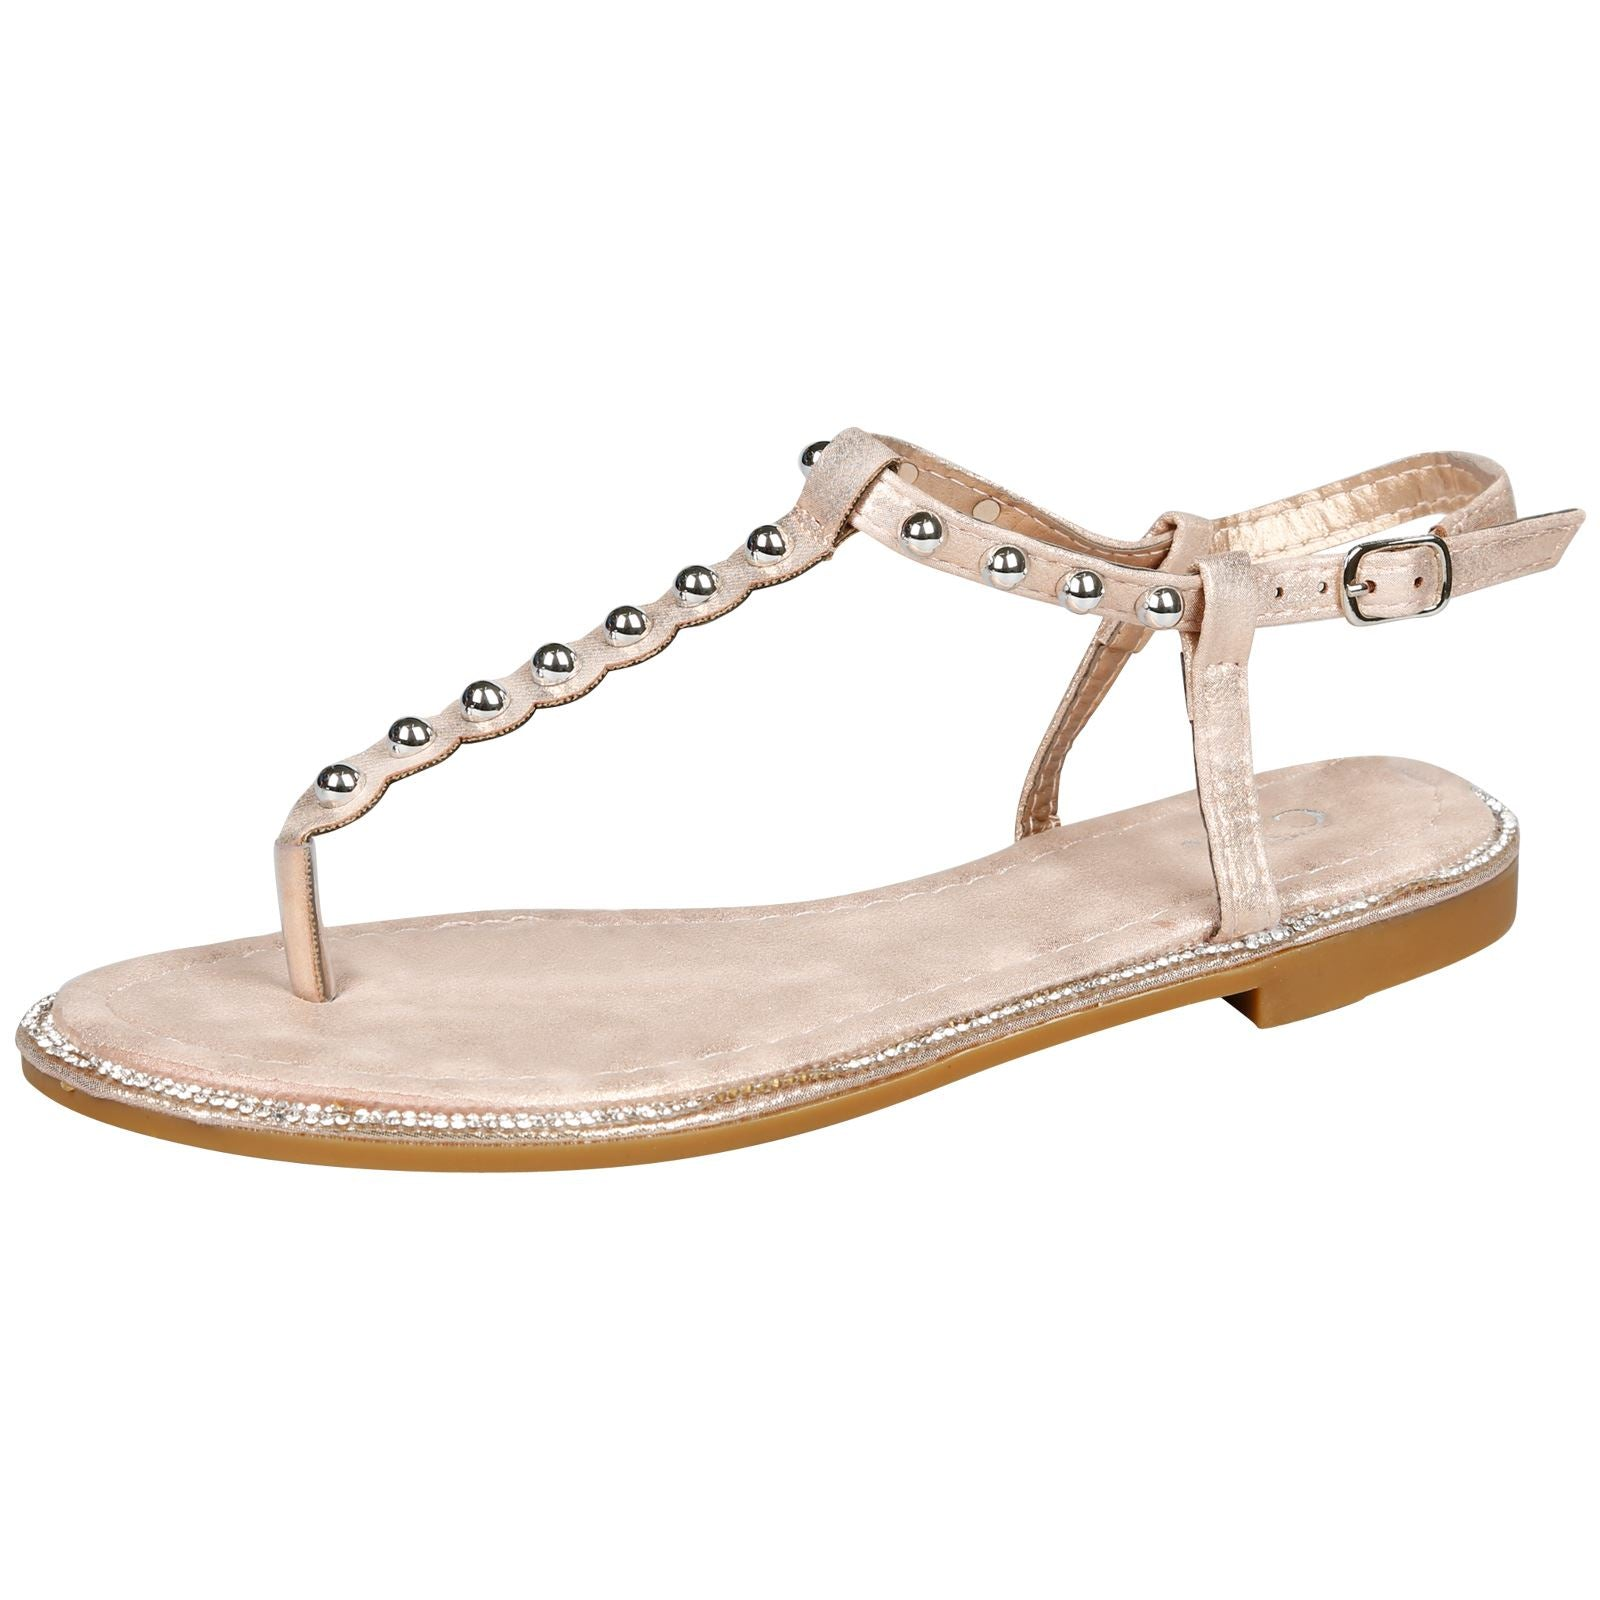 Lae Studded T Bar Sandals in Rose Gold Shimmer